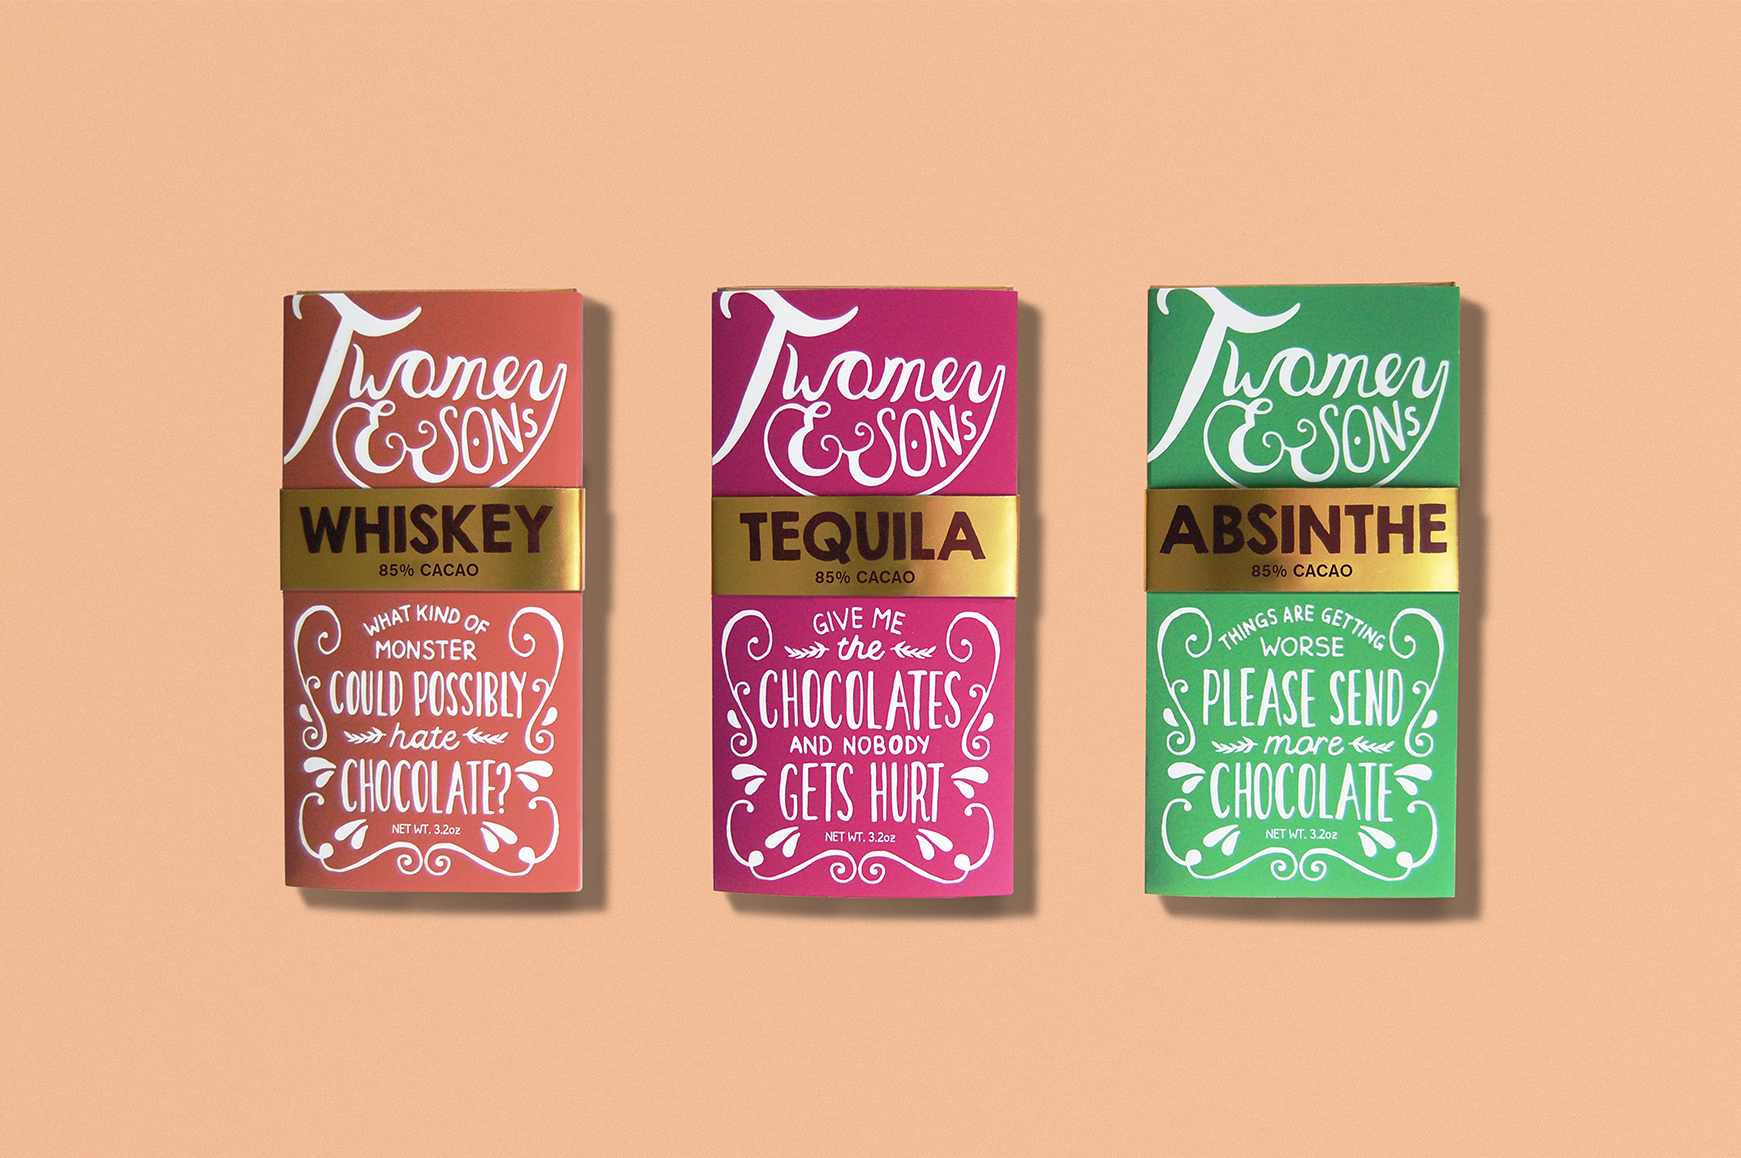 TWOMEY & SONS CHOCOLATE BARS